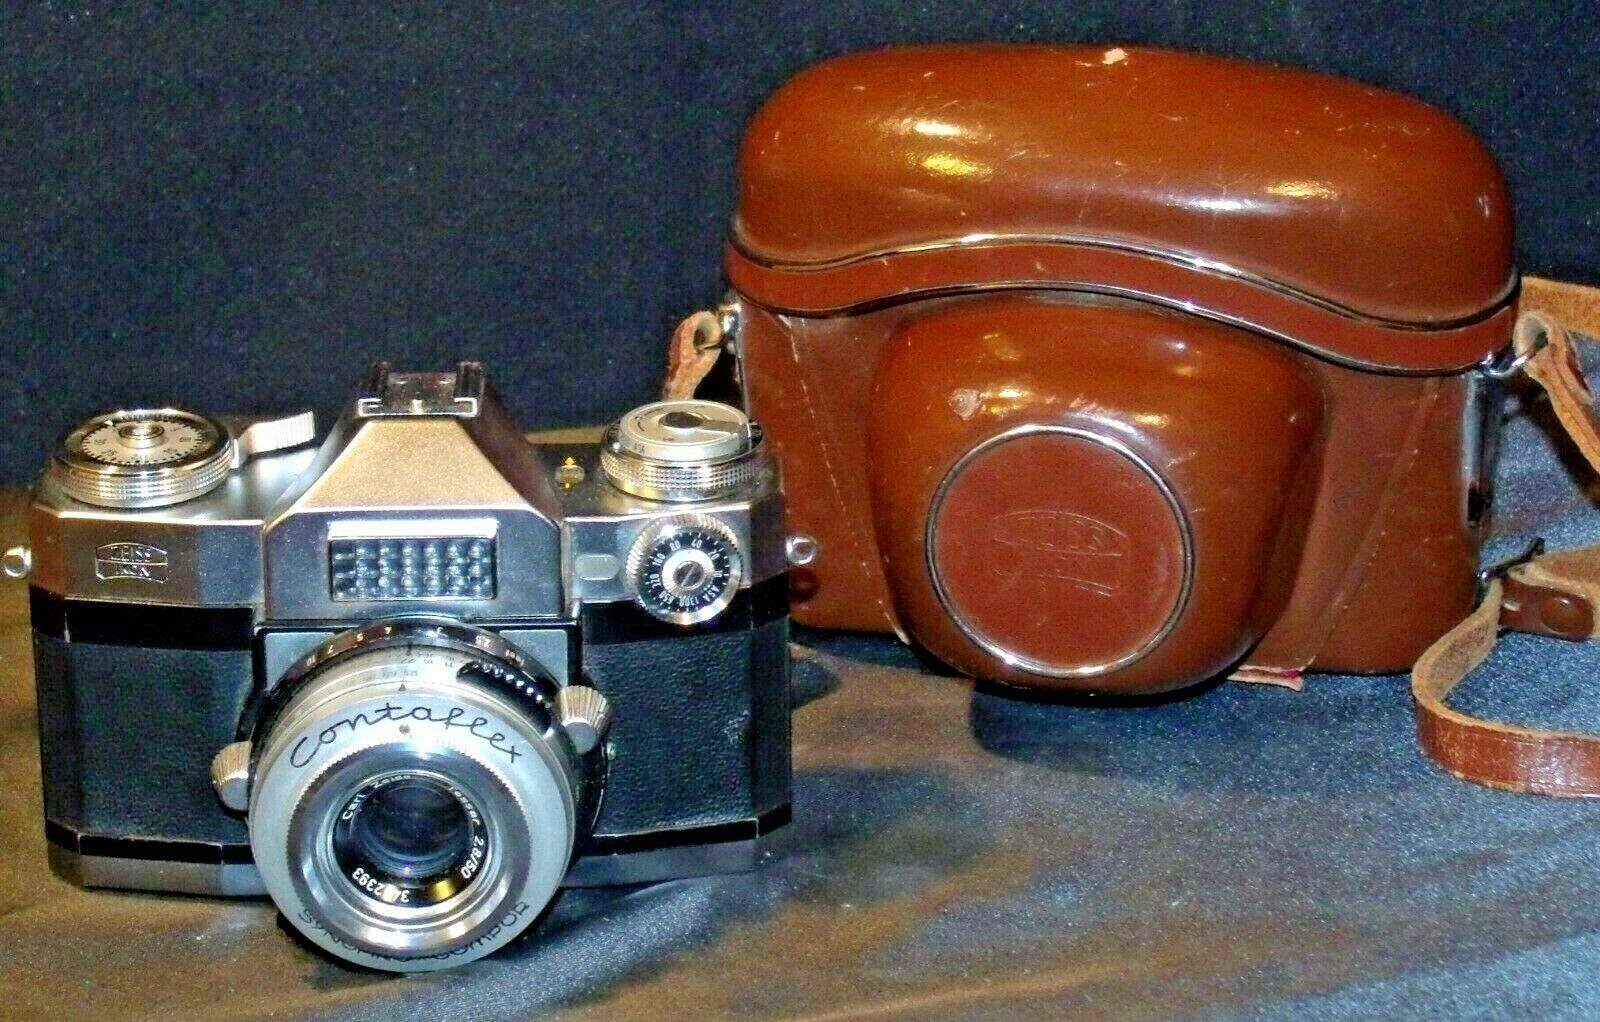 Zeiss Ikon Contaflex Super Camera with hard leather Case AA-192012 Vintage